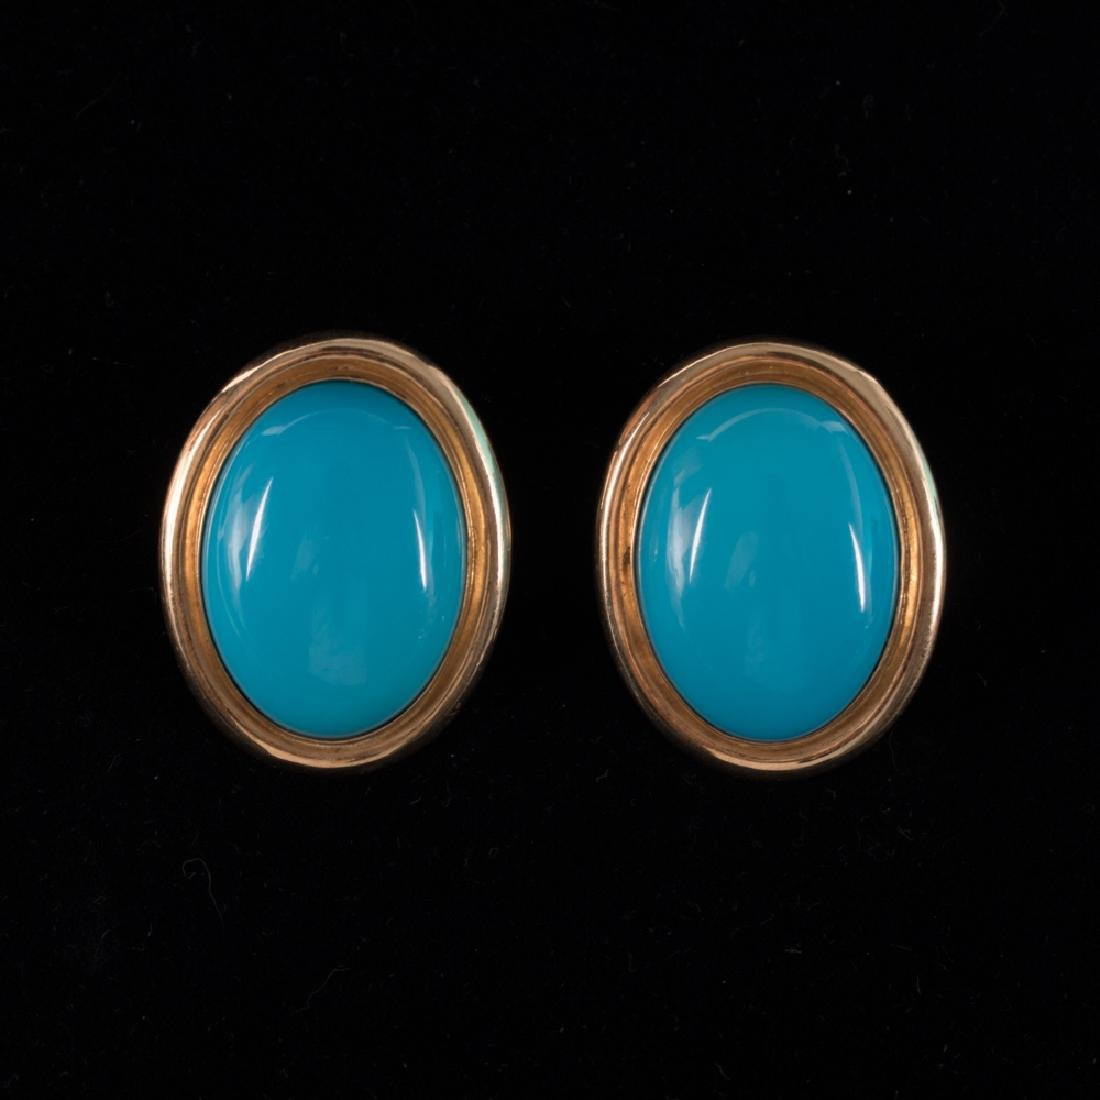 A Pair of 14kt. Yellow Gold and Turquoise Colored Stone